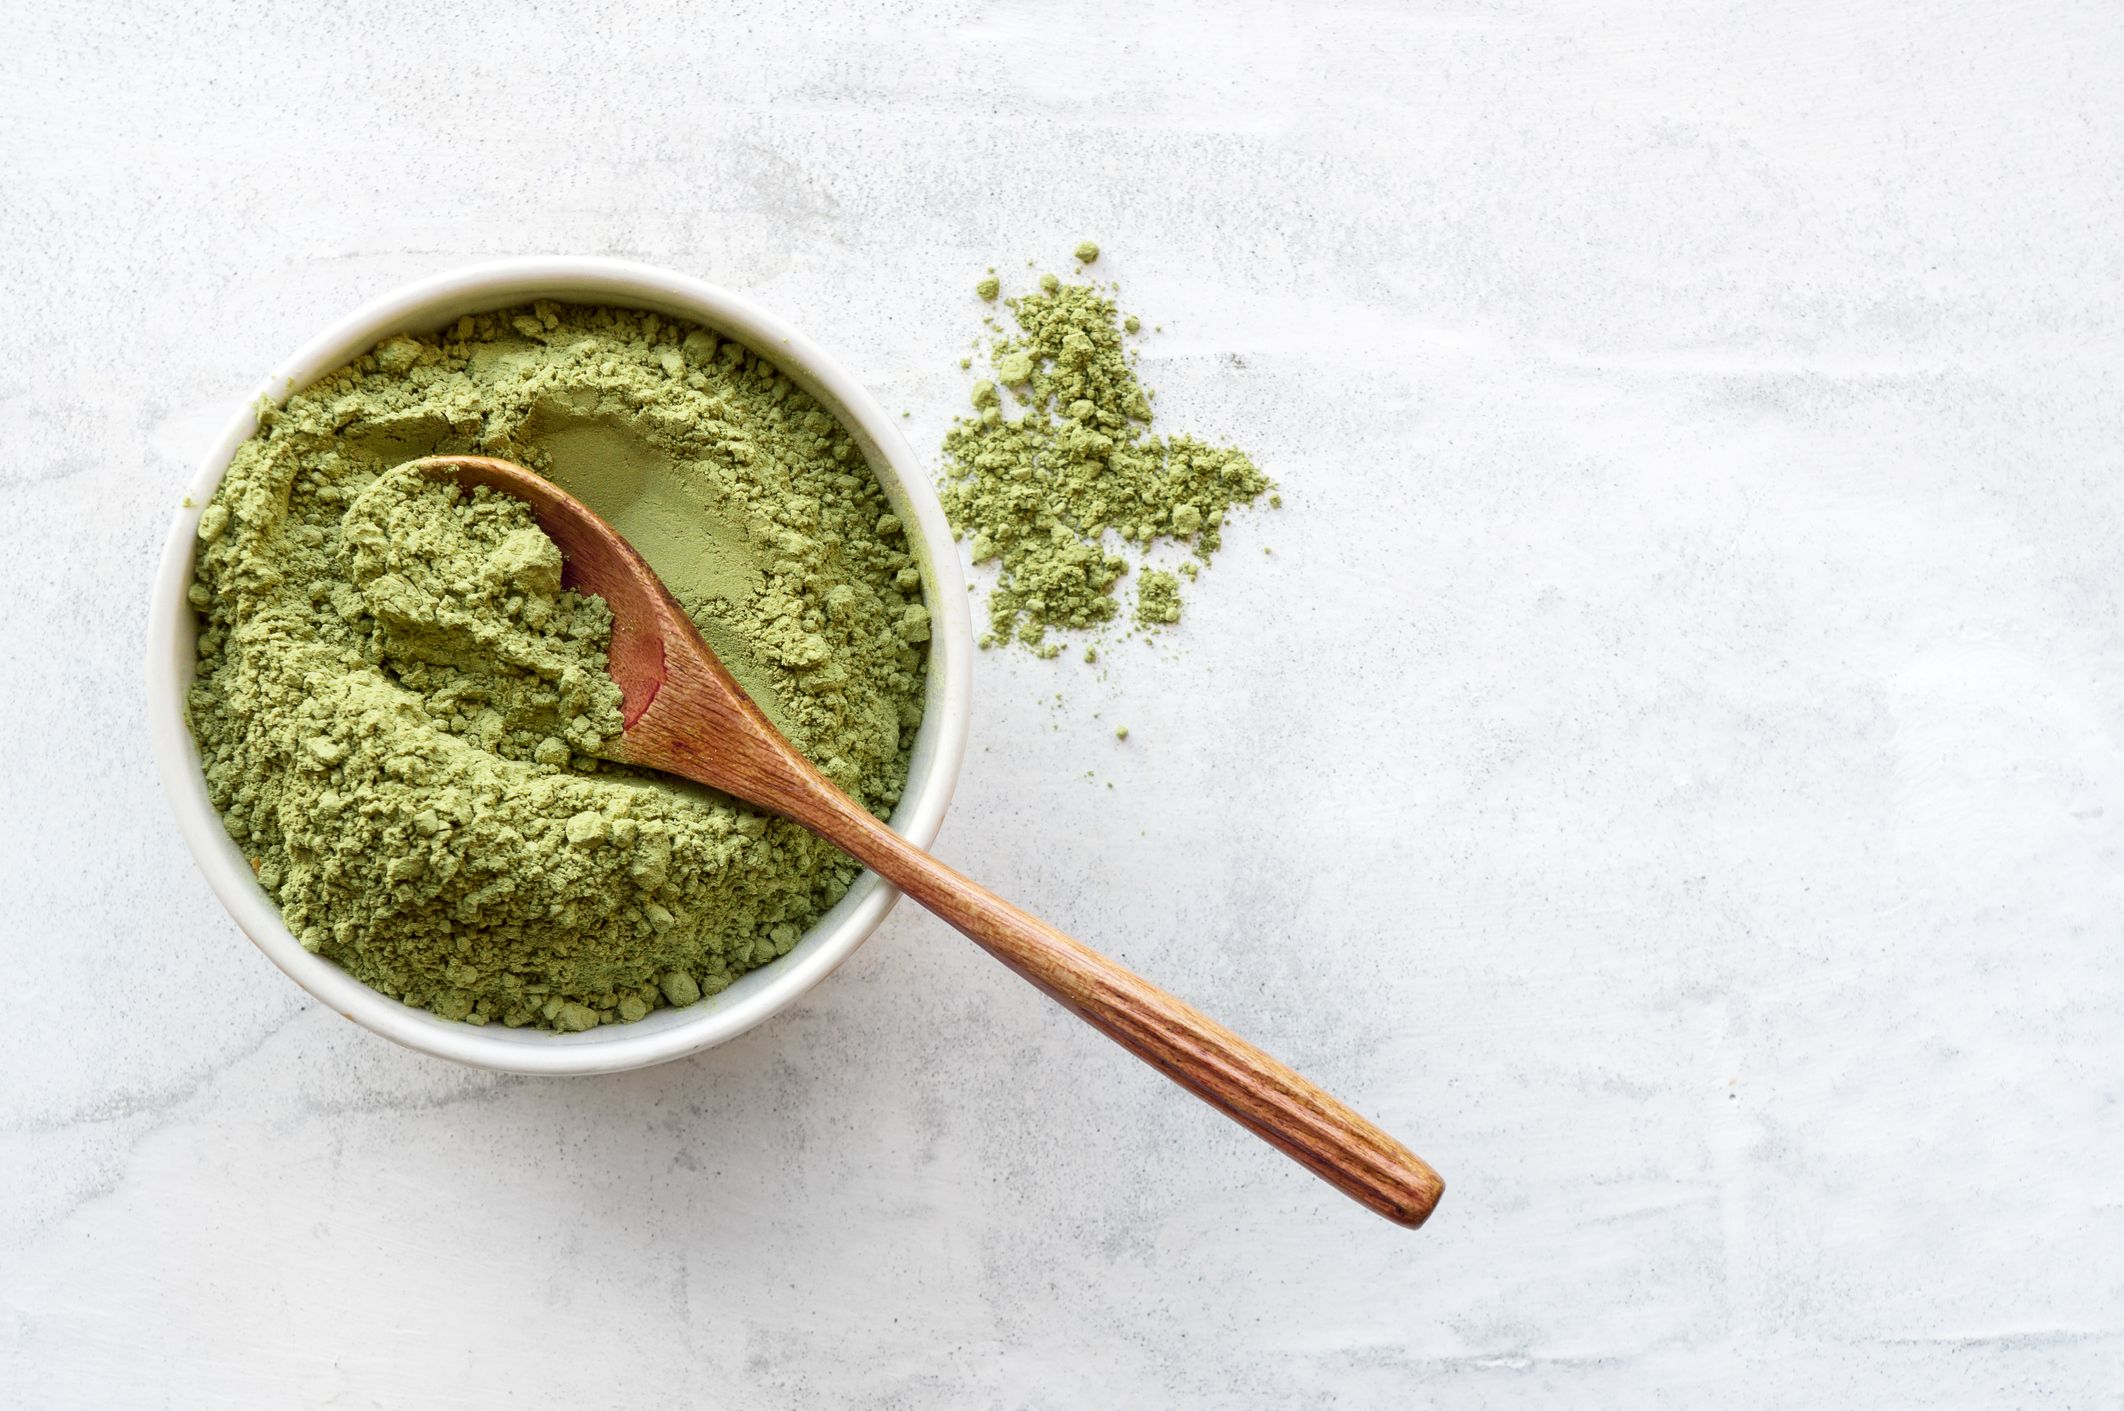 9 Benefits Of Matcha Tea That Will Make You Want To Drink It Every Day